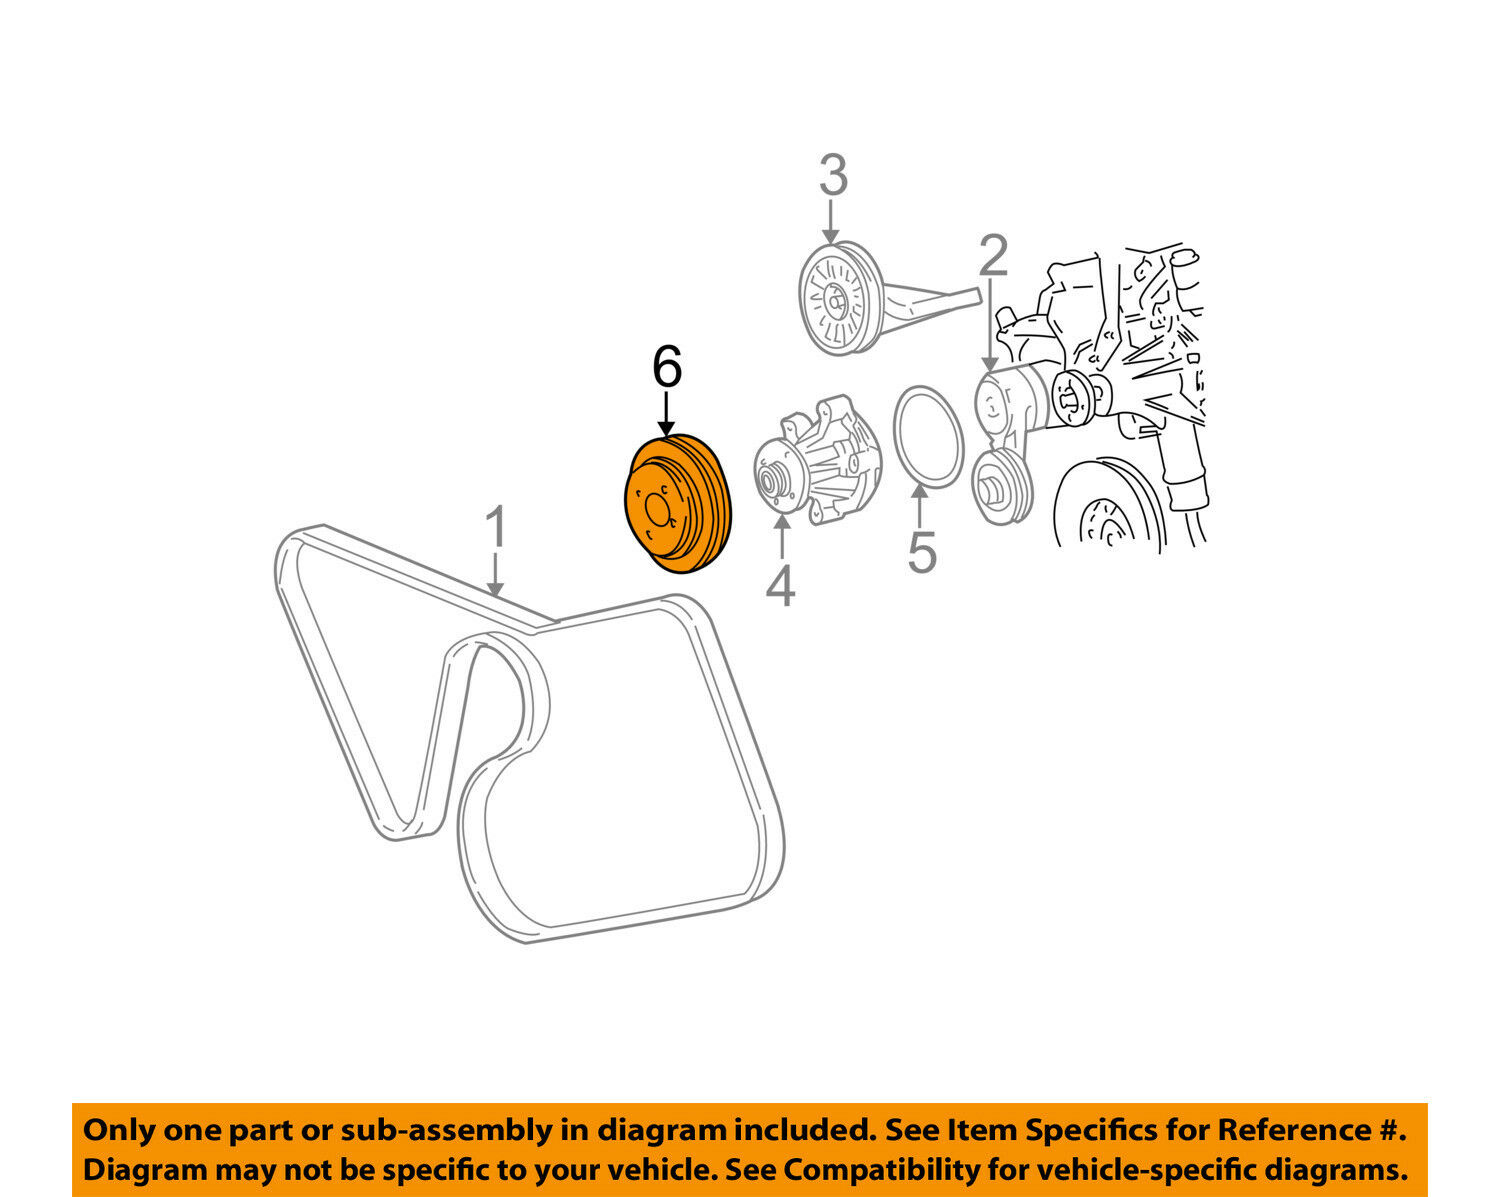 Ford Oem 99 00 Mustang 46l V8 Water Pump Pulley Xr3z8509ea 4 6l Engine Diagram 1 Of 2only Available